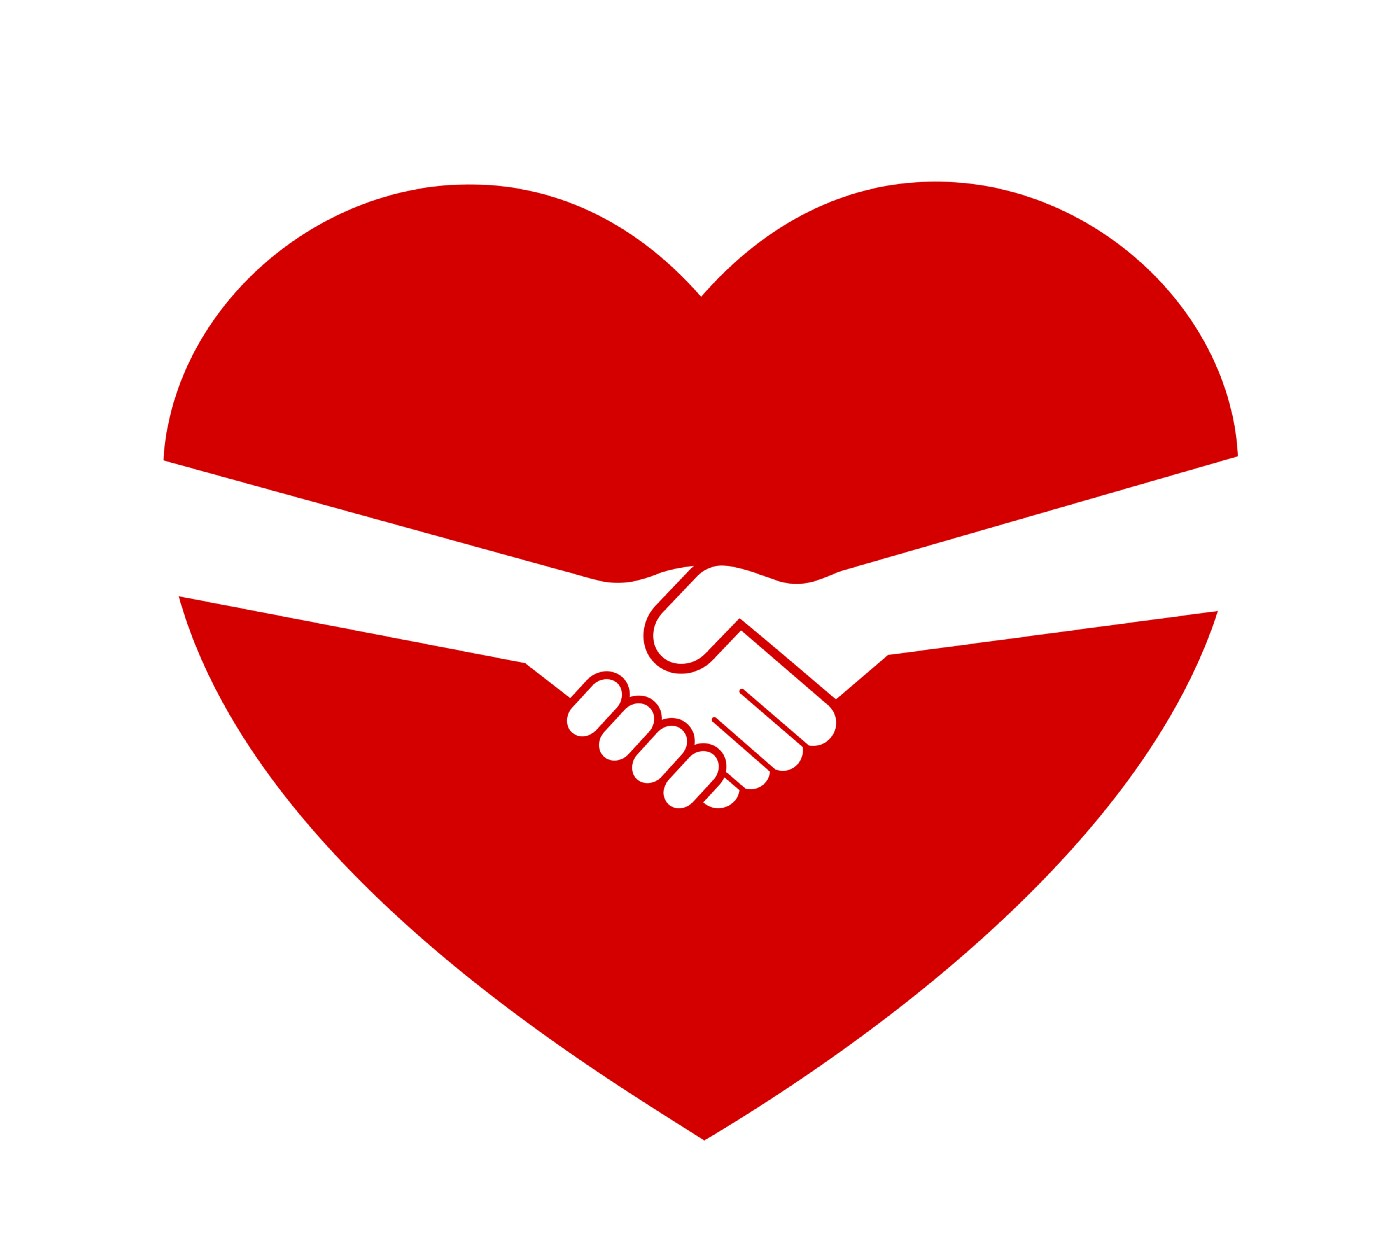 Love heart and handshake - Consent, deal and treaty between partner, significant other and lover - consensual sex agreement.